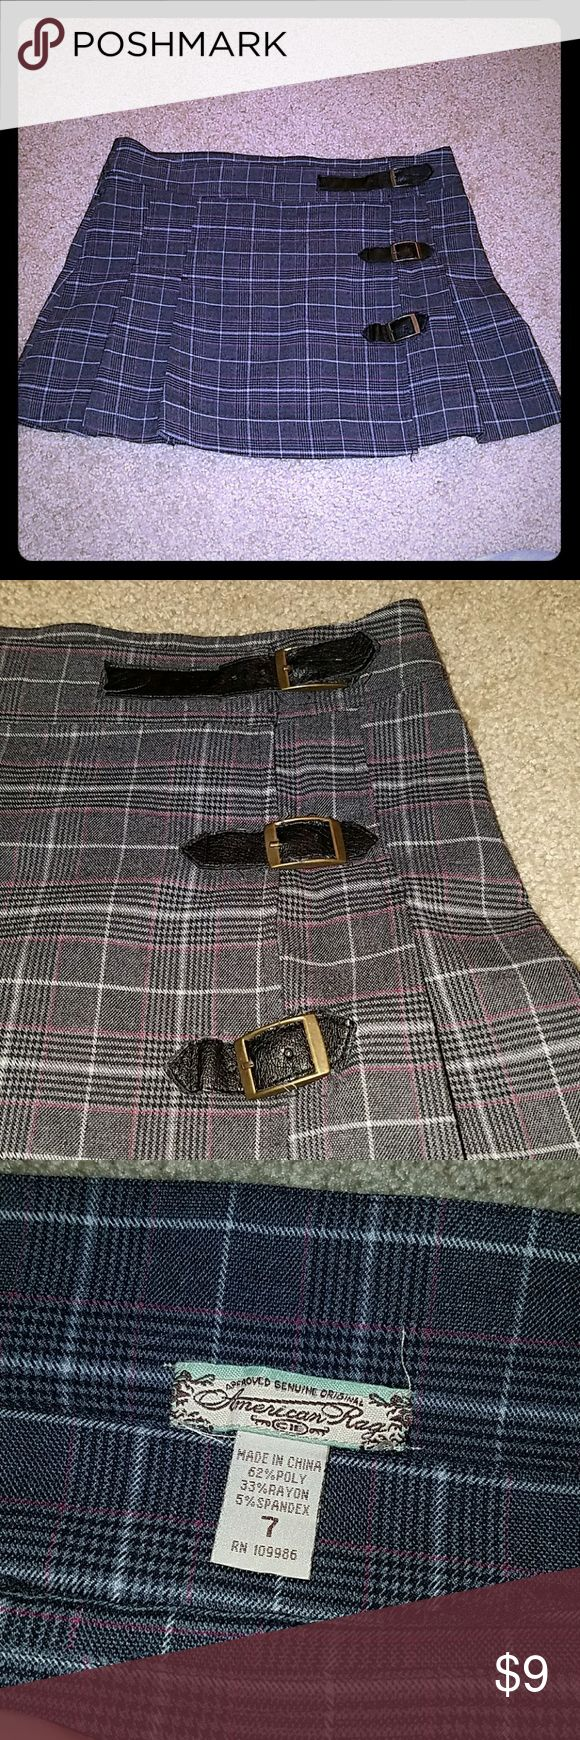 School girl pleated skirt plaid goth punk clueless So cute! Has buckles and snaps. Buckles show normal wear. Size is 7 but would fit a 9 as well. Perfect with a sweater and boots. Selling as i have too many skirts. Very 90s and fun American Rag Skirts